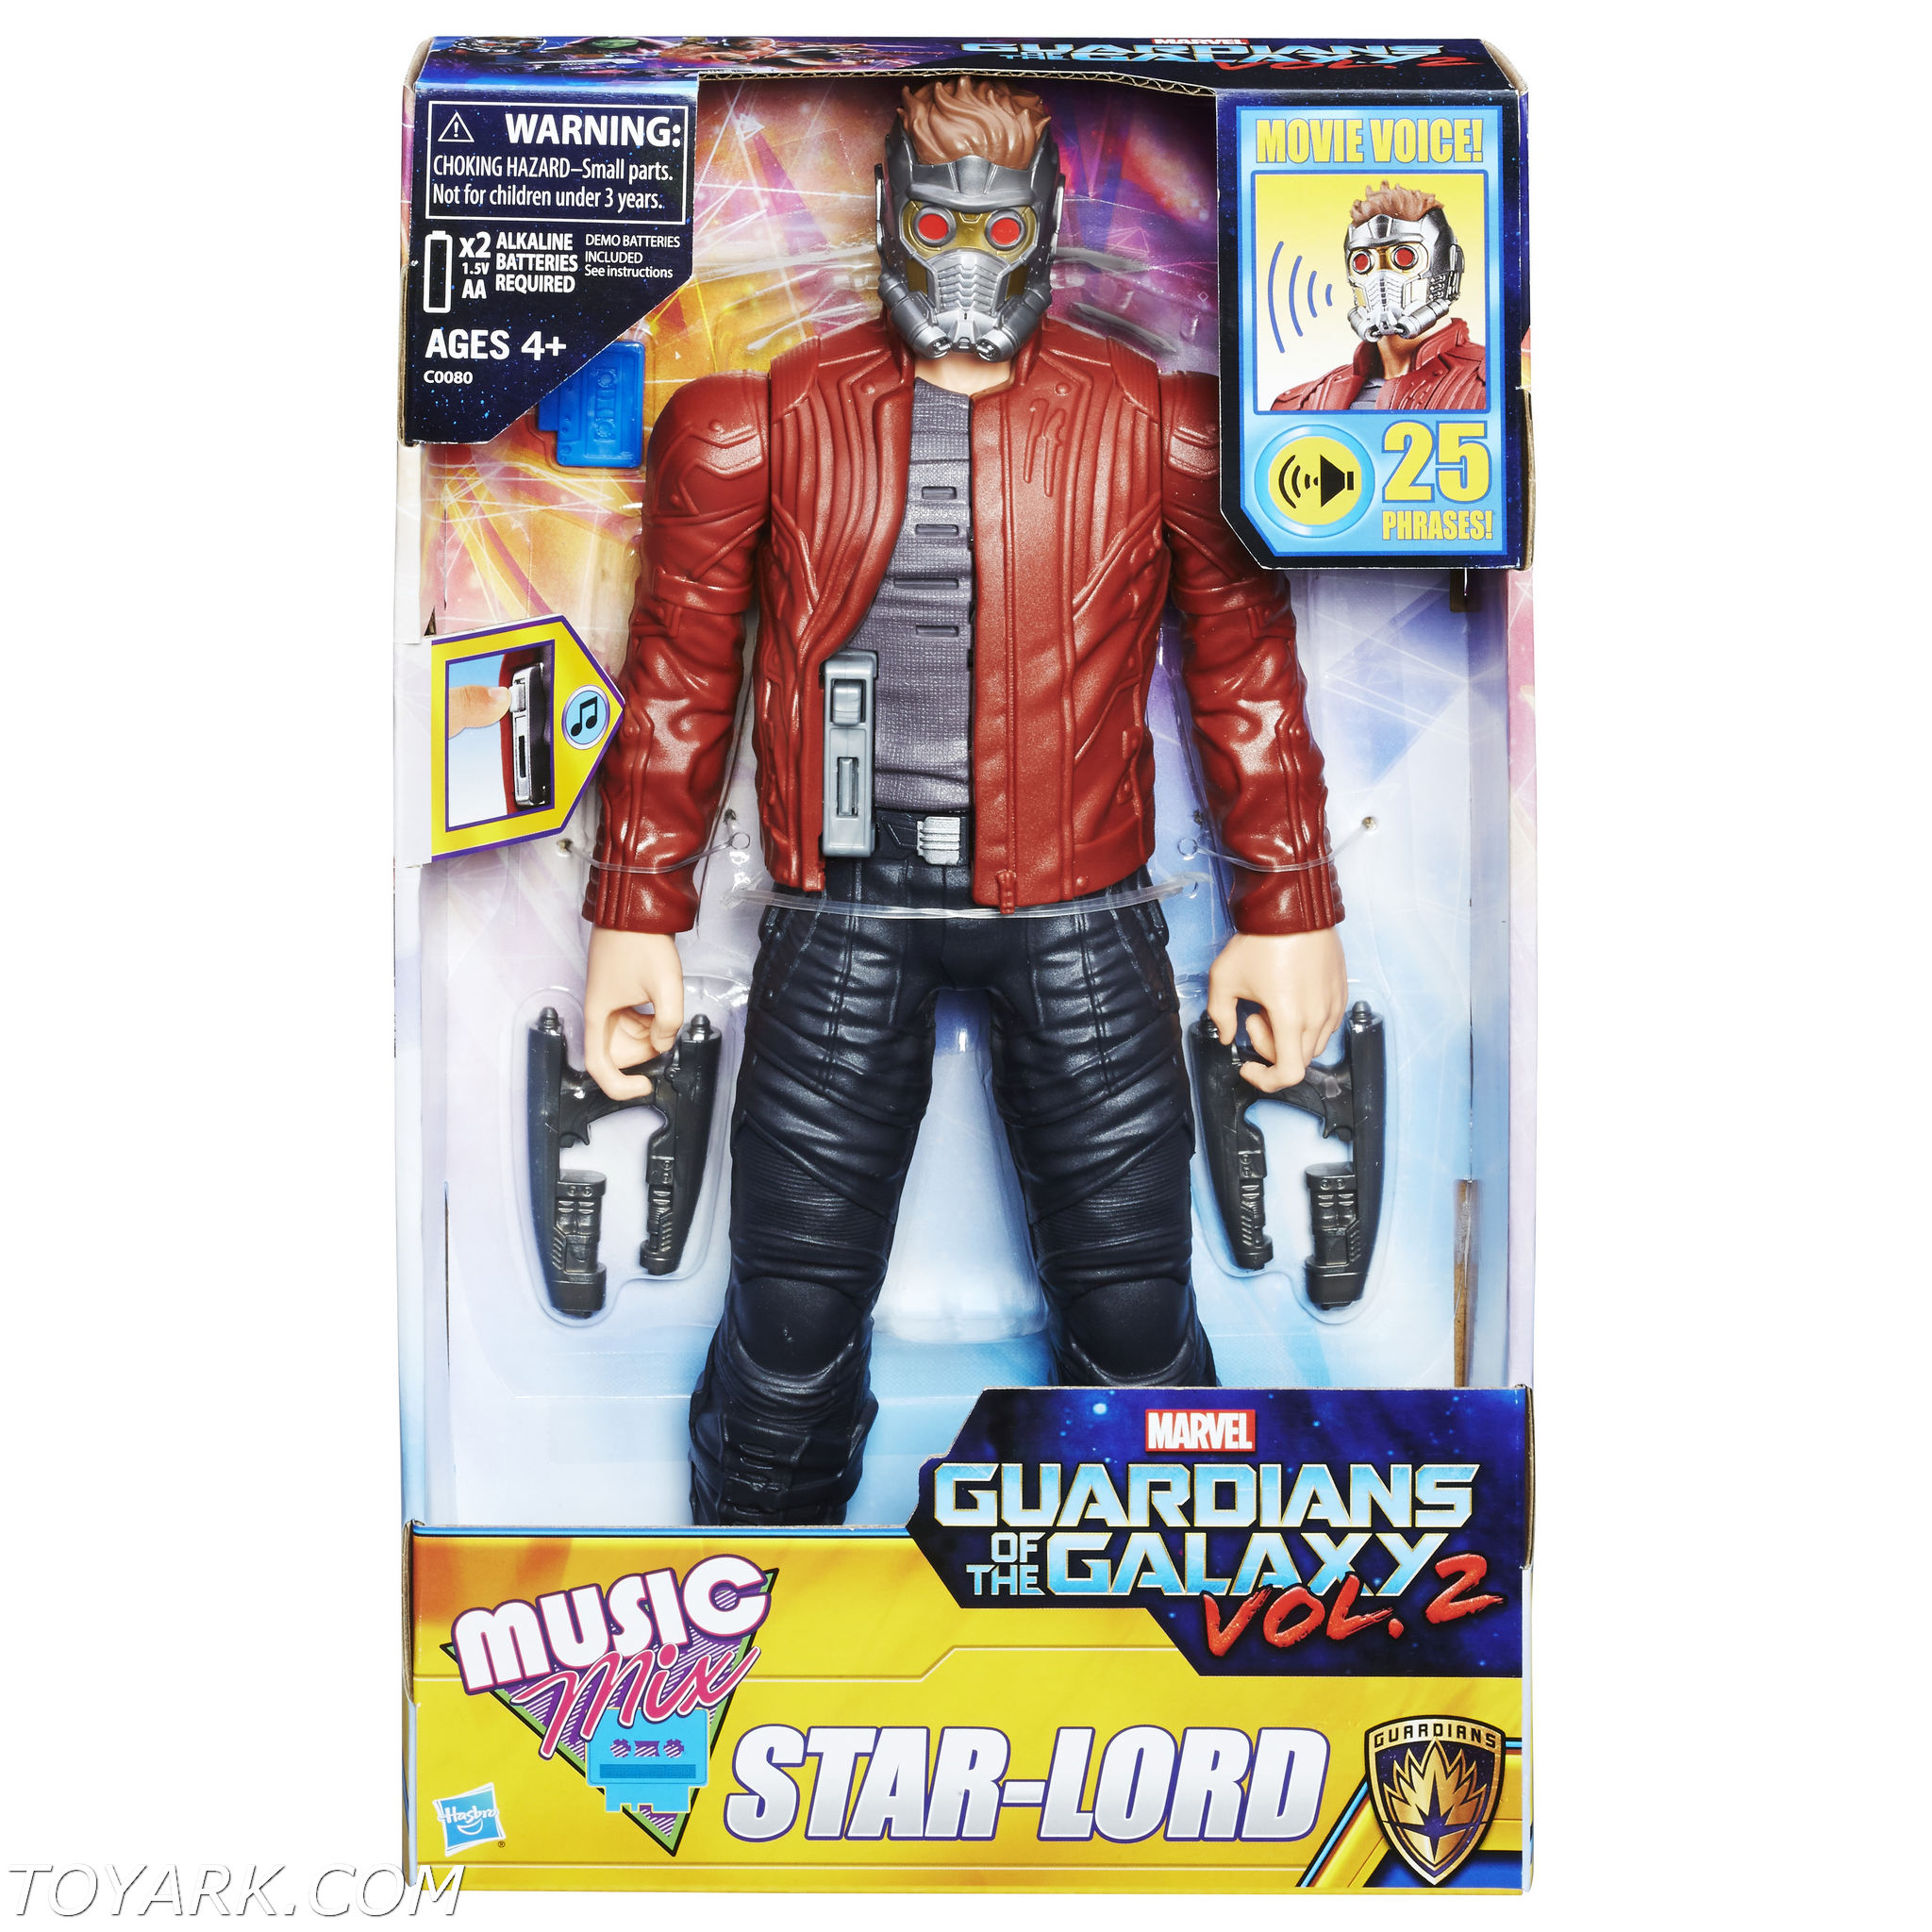 Marvel guardians of the galaxy vol 2 hasbro spring 2017 for Galaxy toys